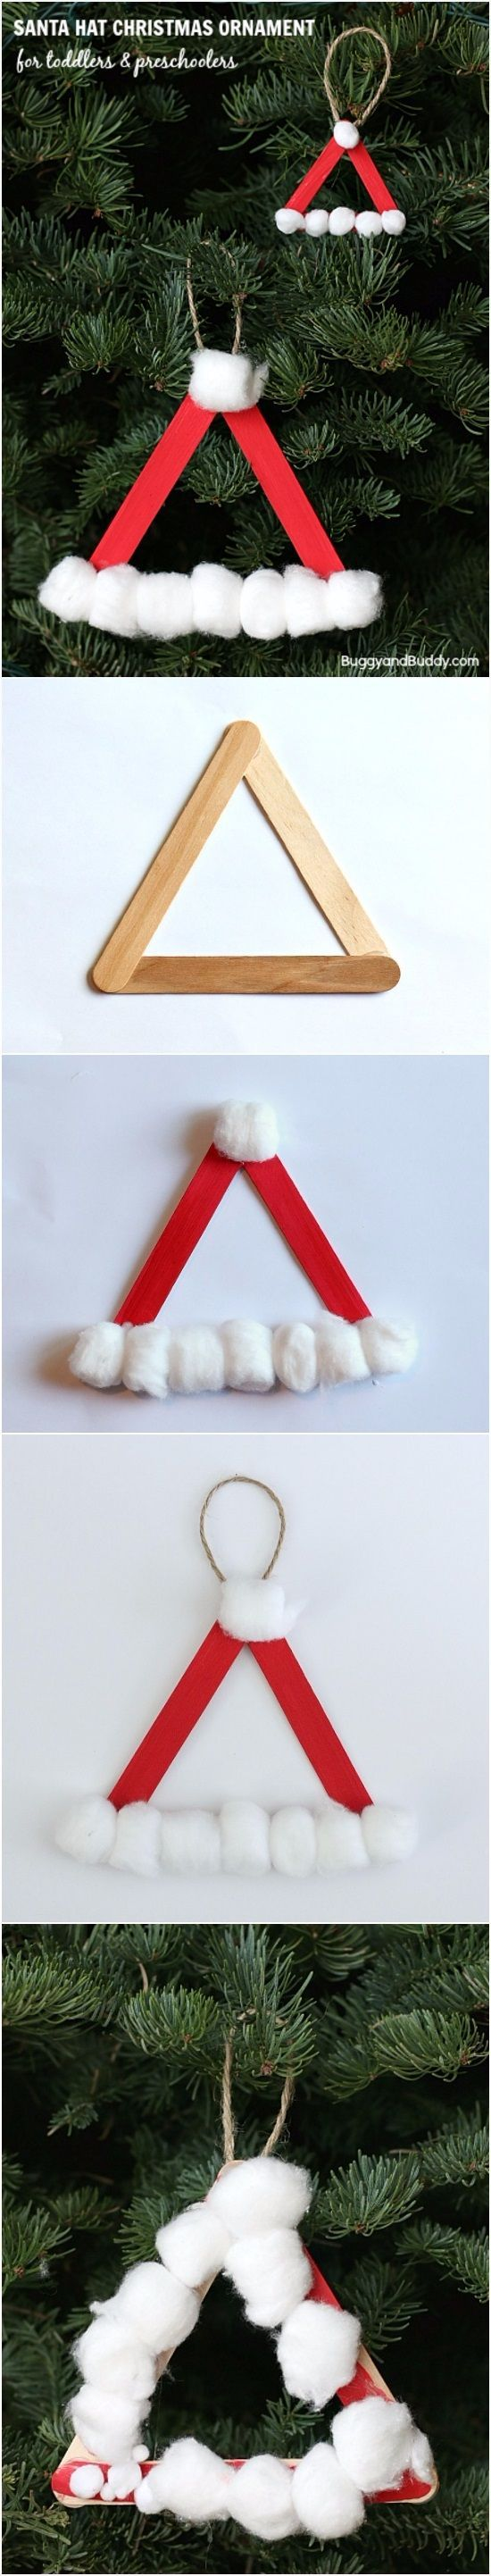 Santa Hat Homemade Christmas Ornament Using Craft Sticks | diyfunidea.com